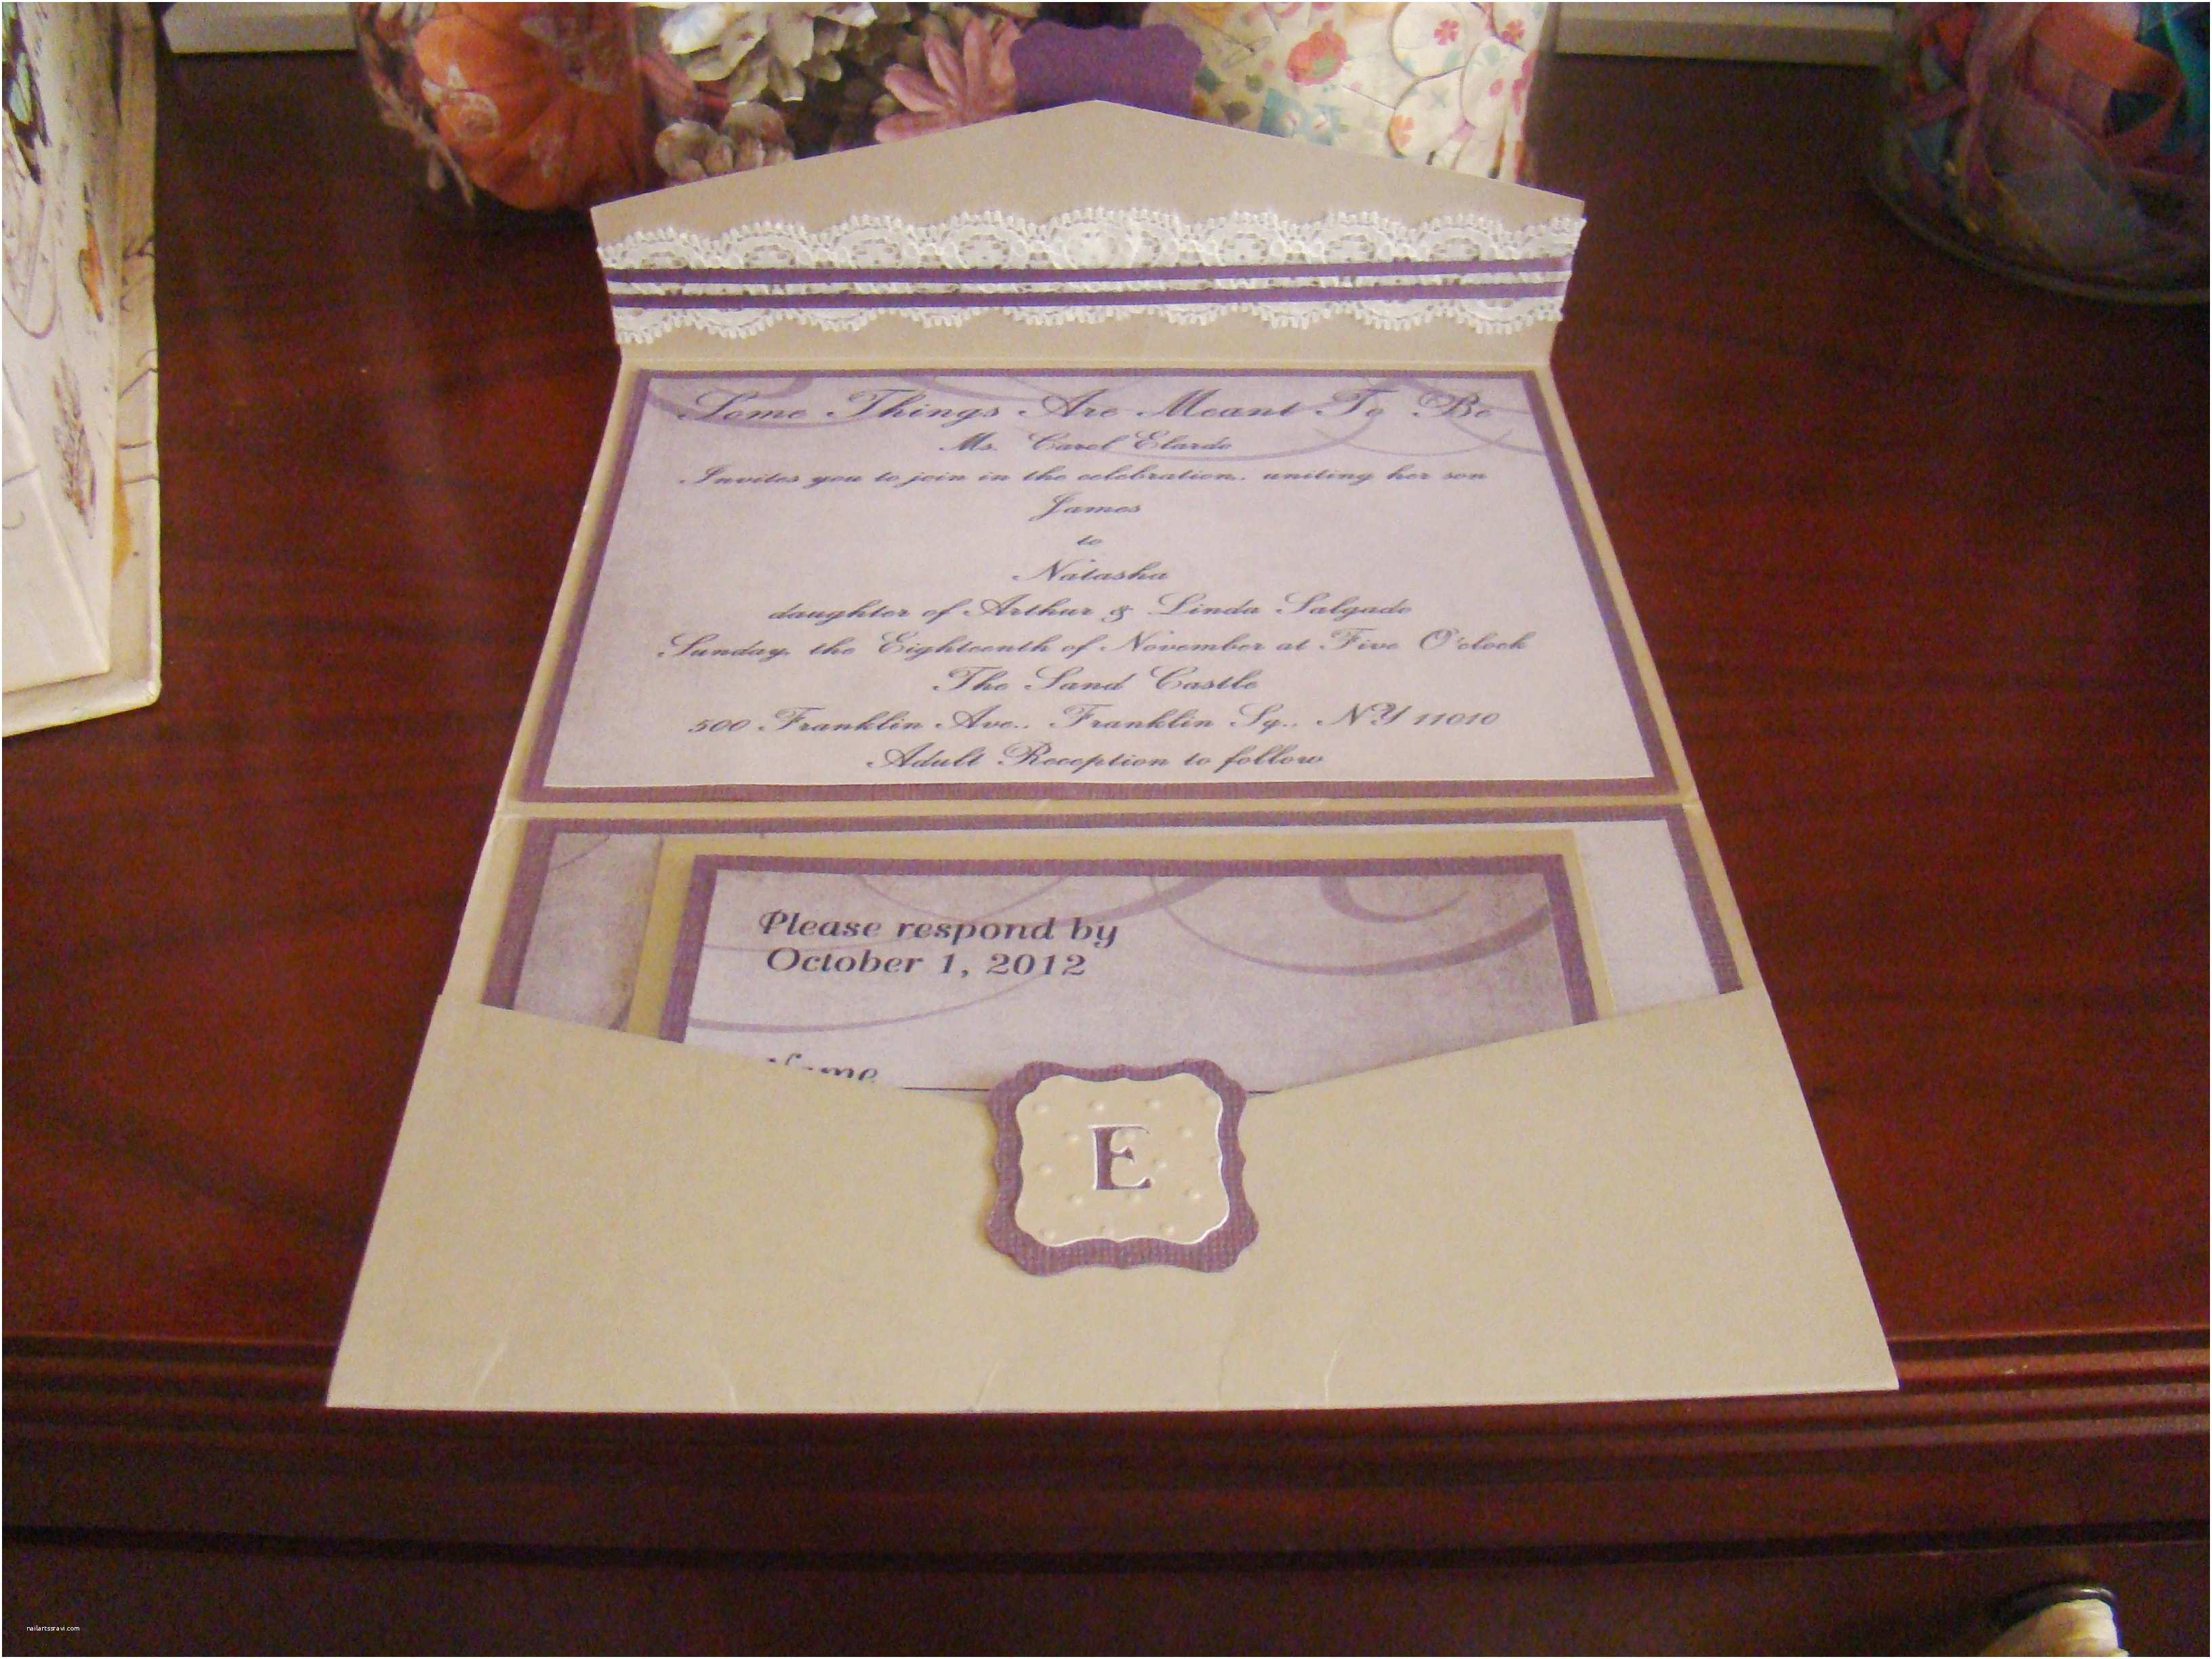 Vistaprint Com Wedding Invitations Vistaprint Wedding Invitations Reviews Various